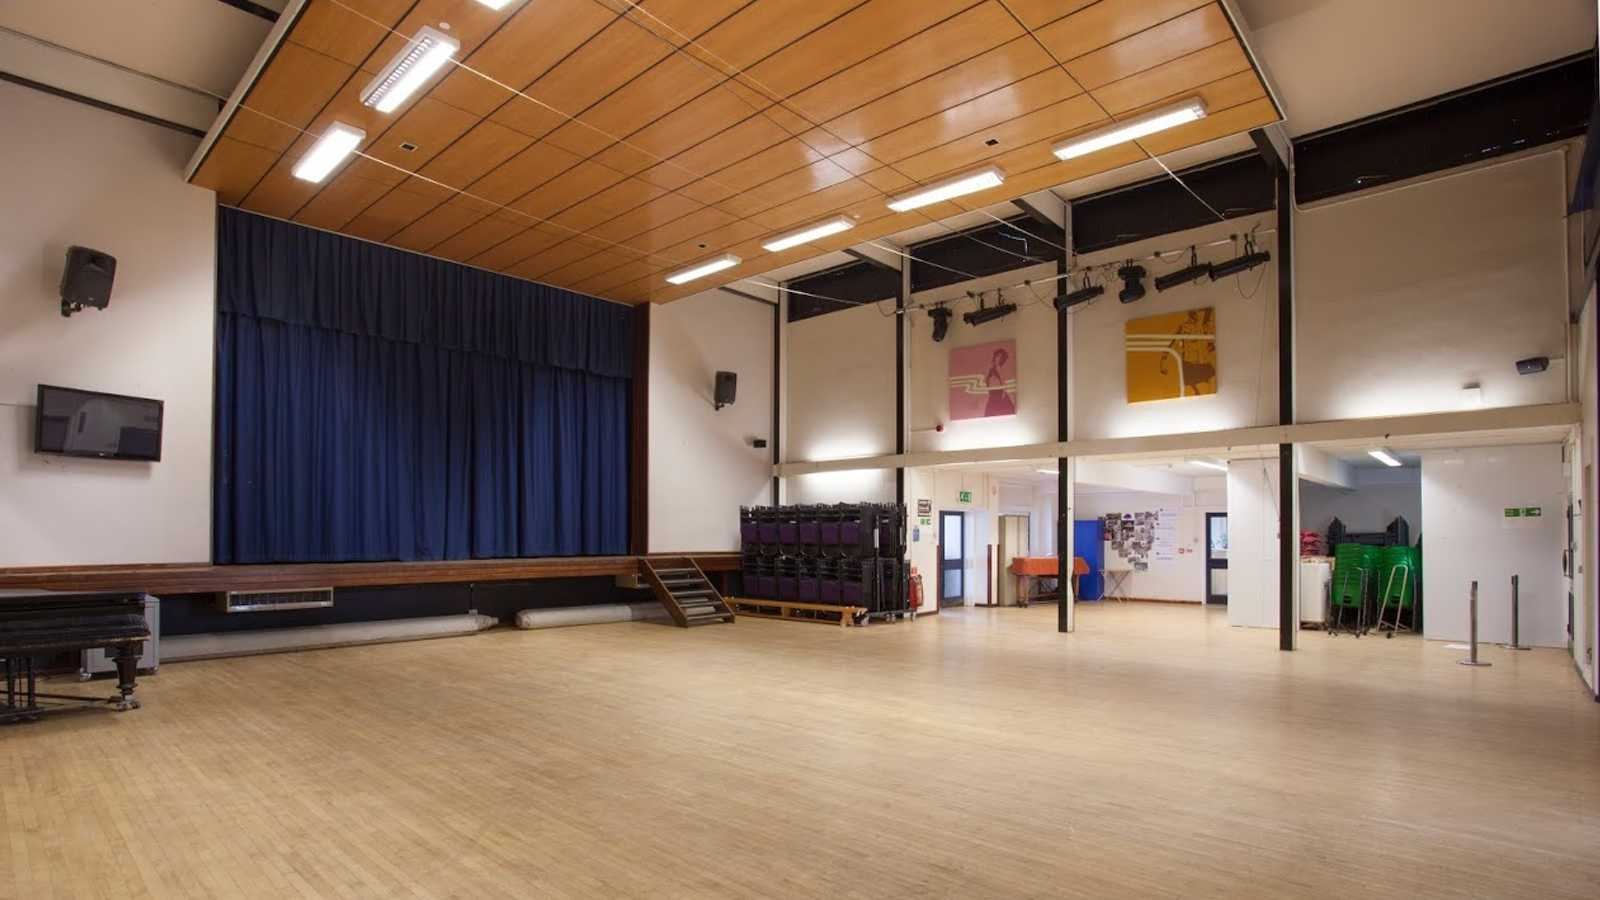 Main hall and stage